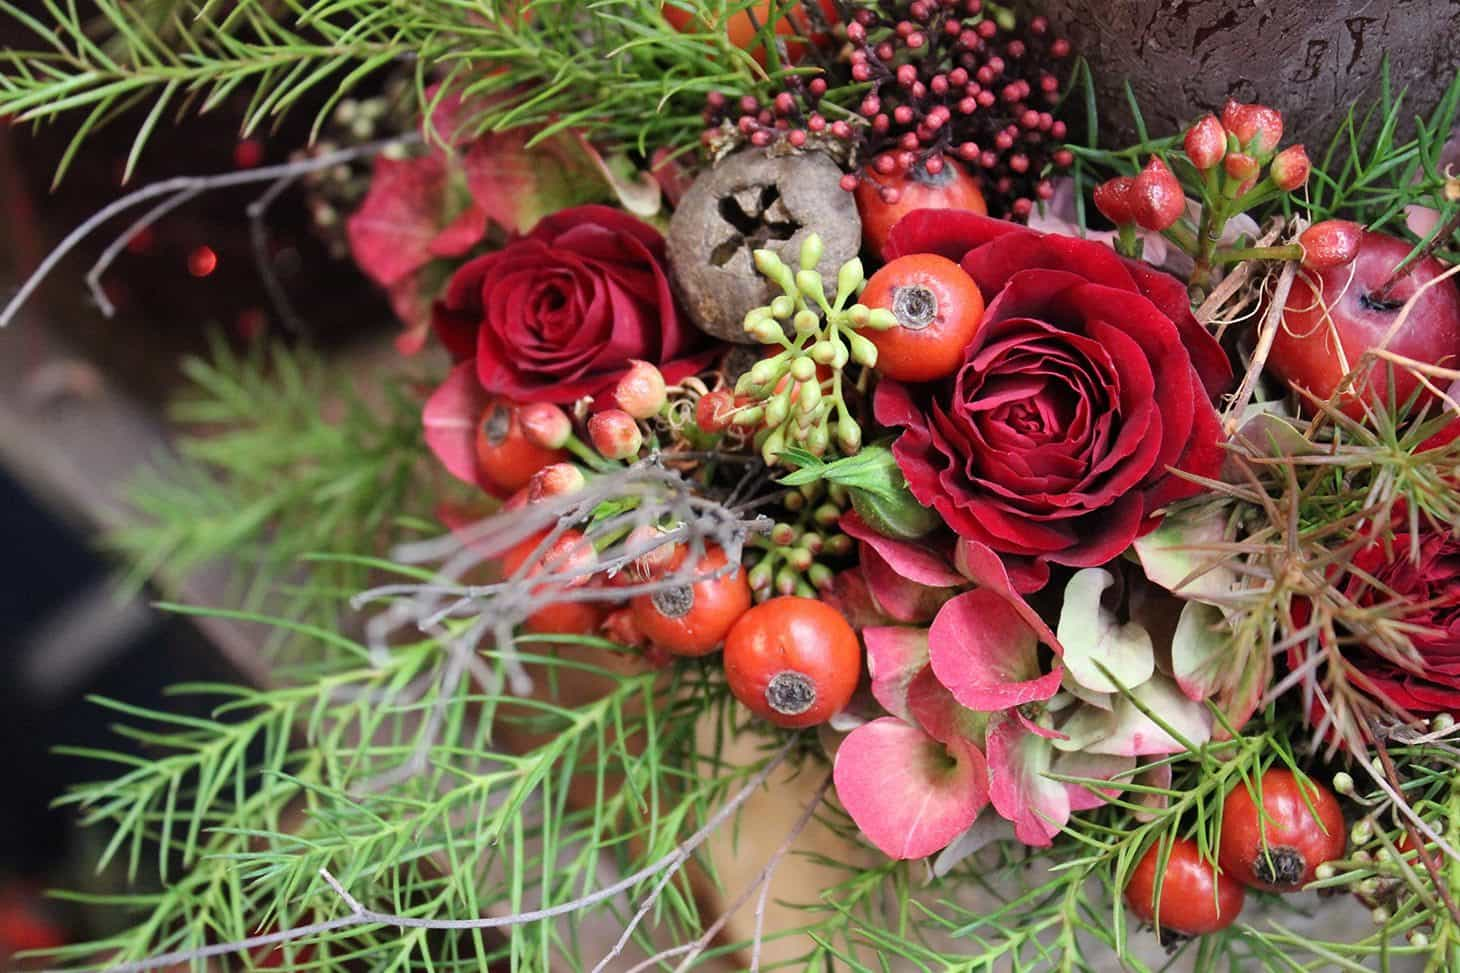 Christmas magic, zita elze 2016, christmas flower shop london